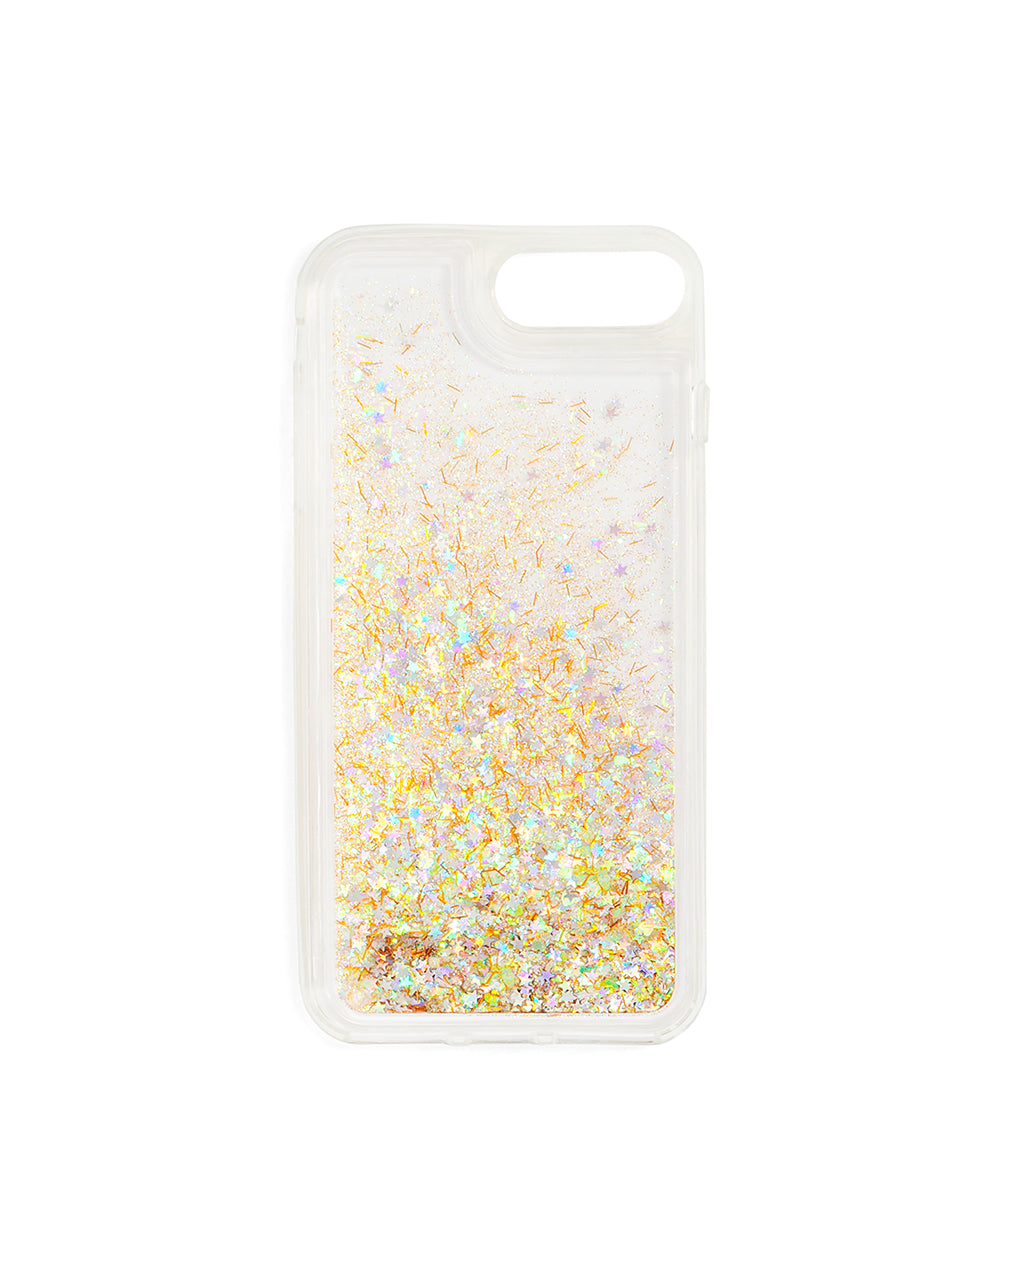 Interior view of clear iPhone case filled with metallic glitter